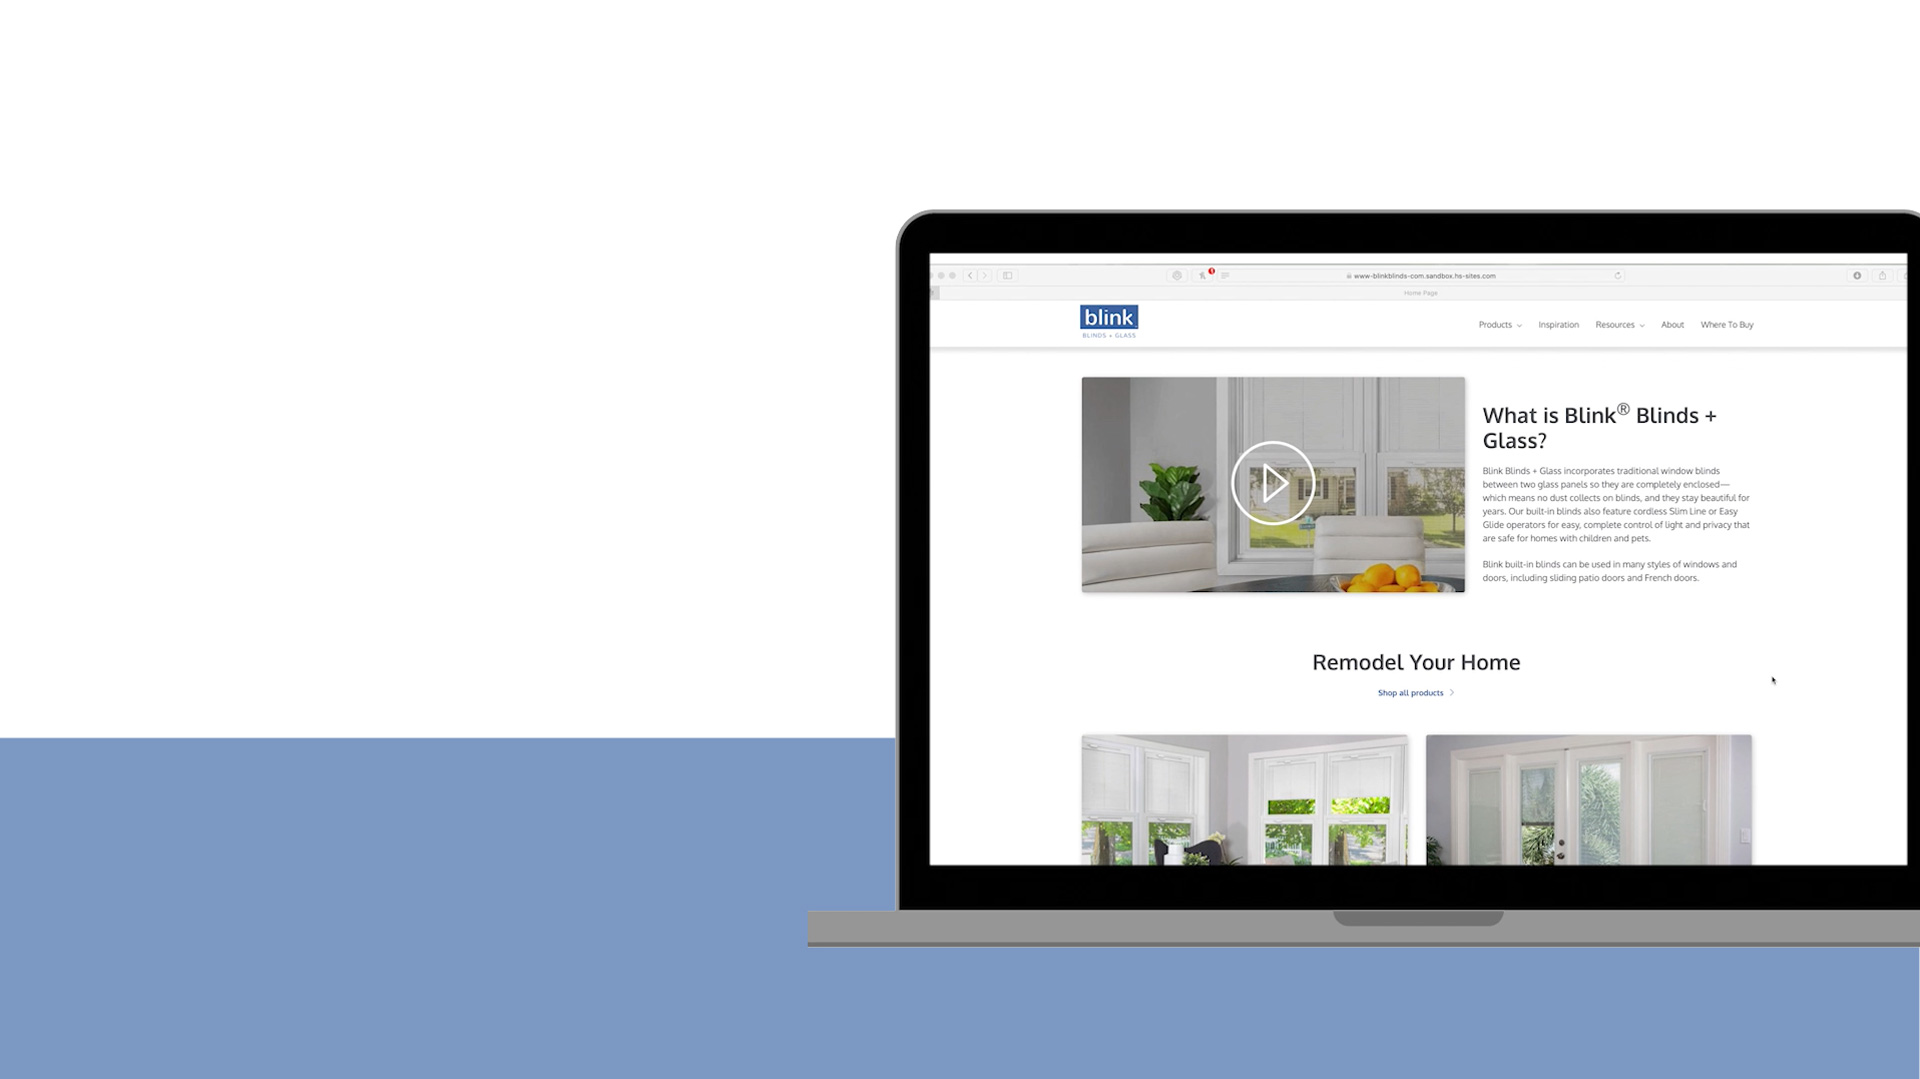 Blink Blinds + Glass, an ODL Company, Introduces New Website